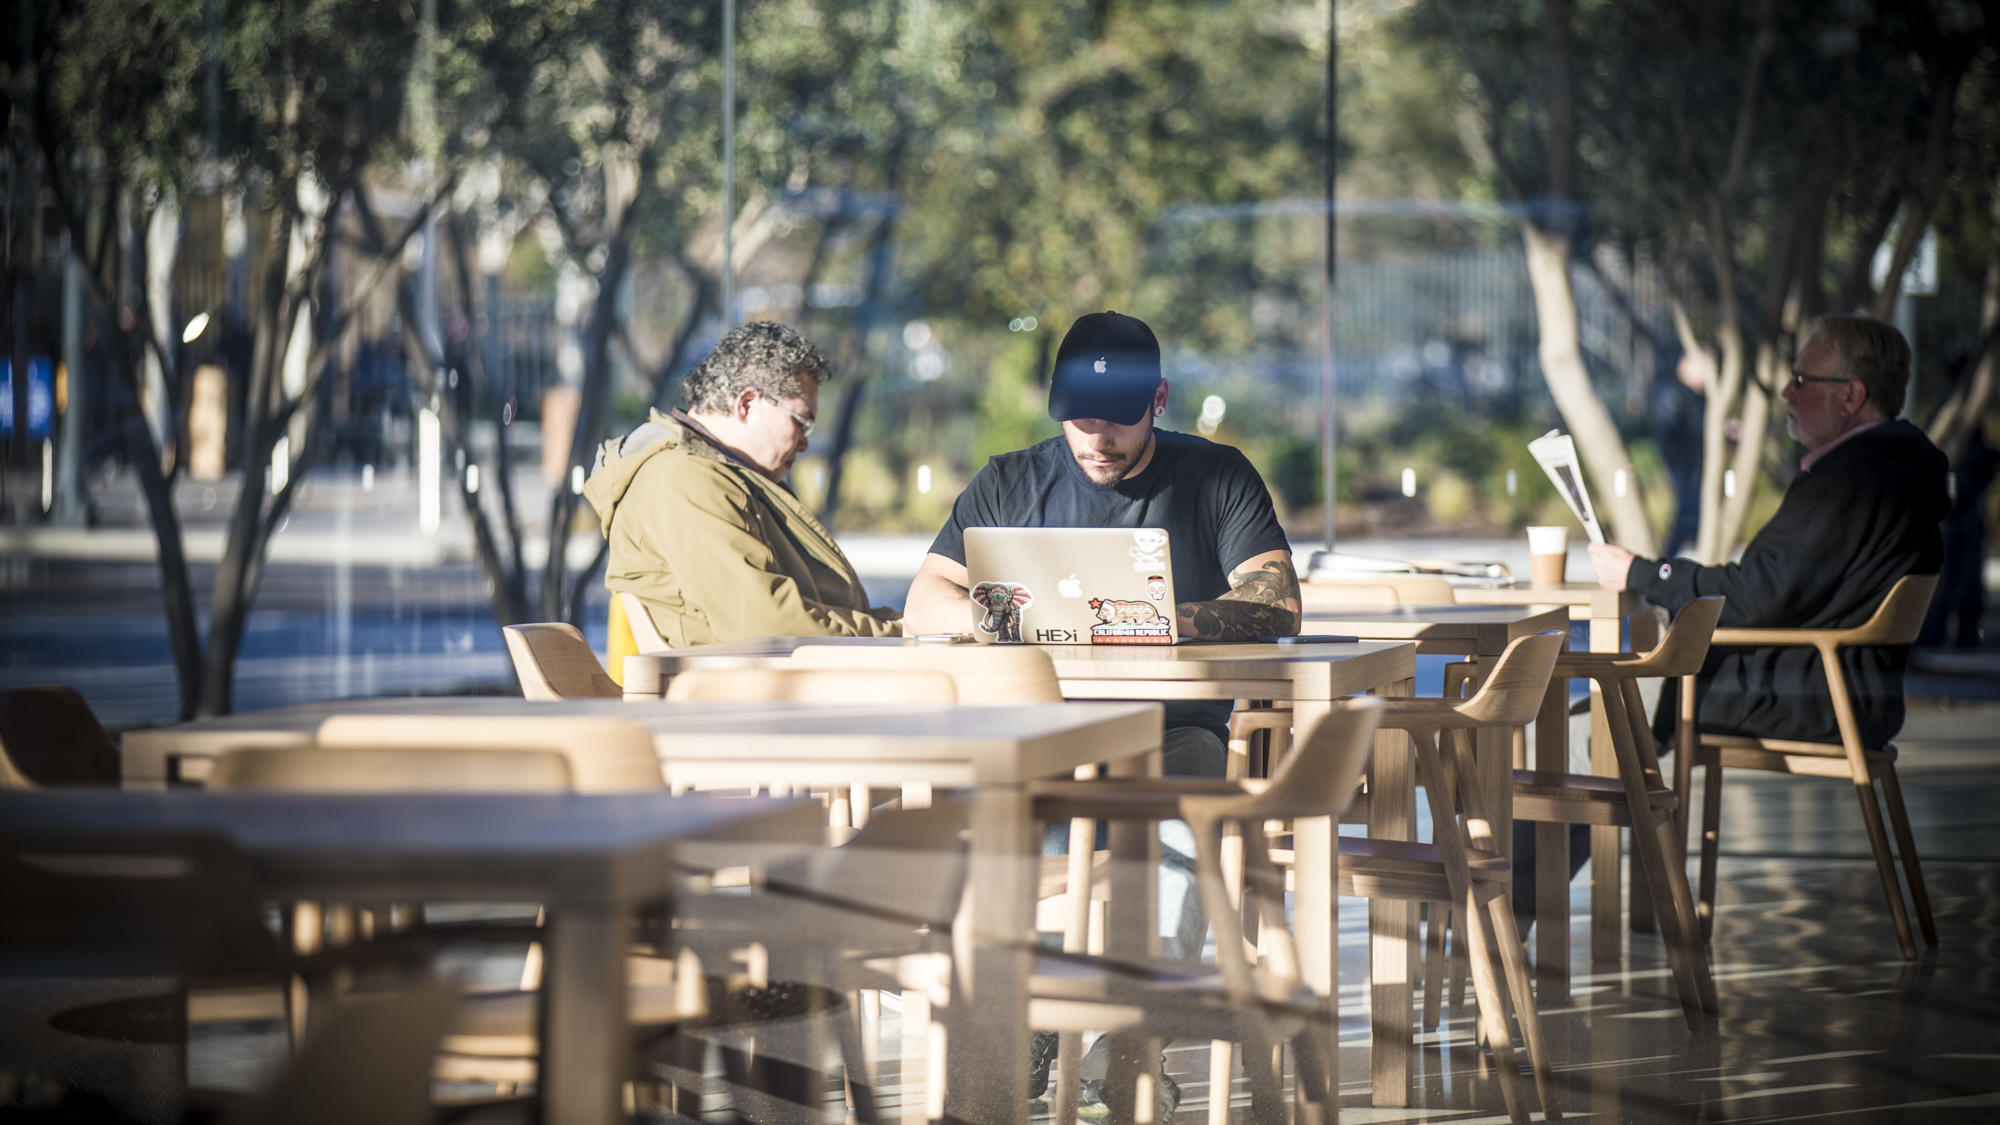 People hanging out at the new Apple campus.